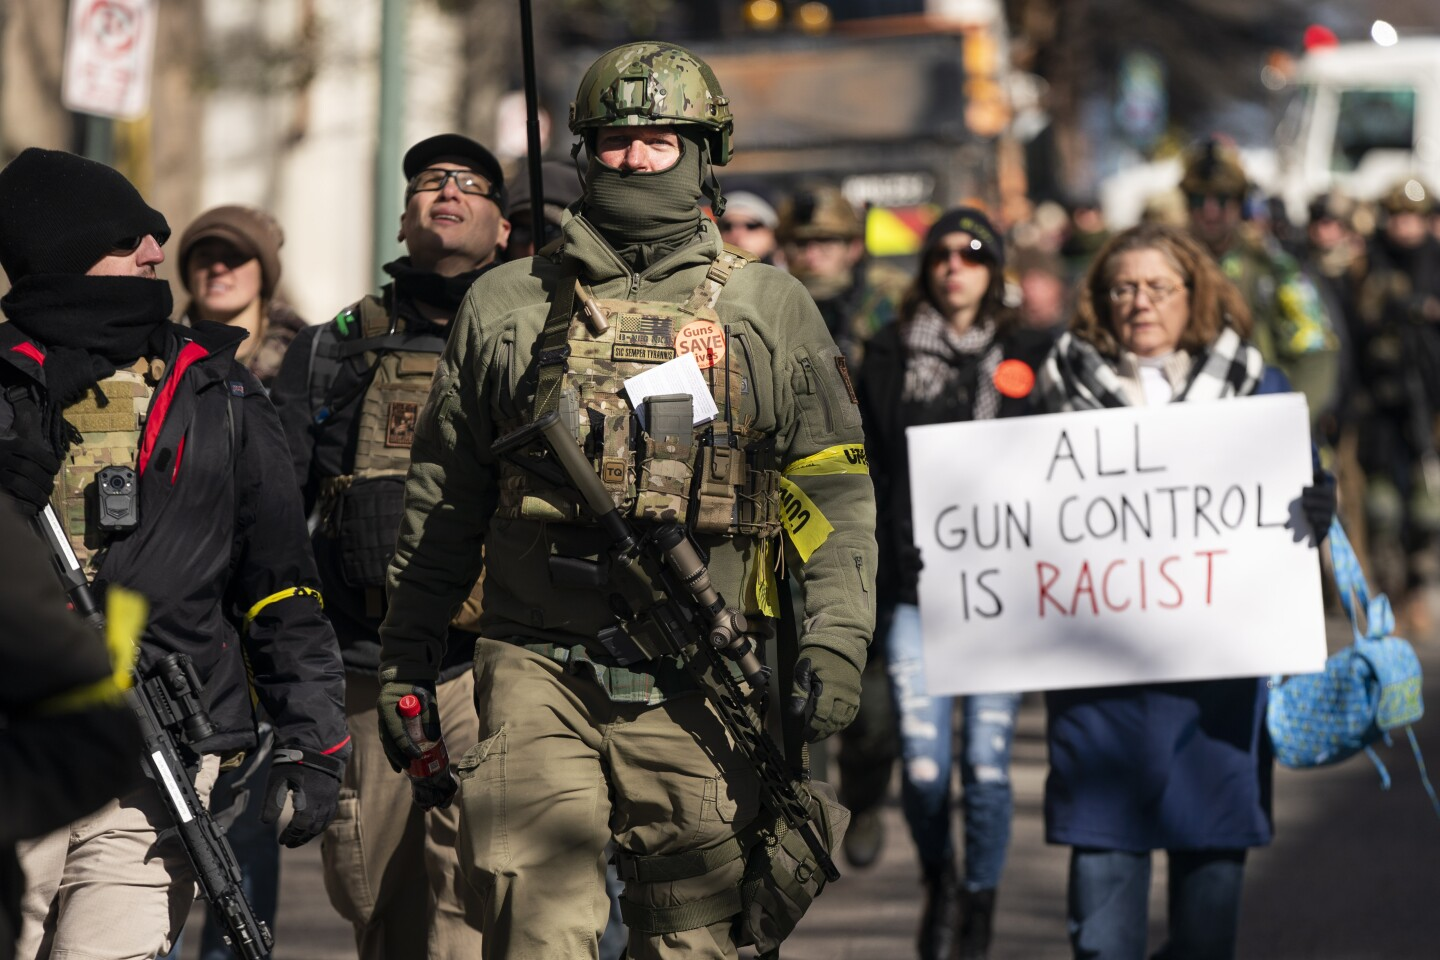 Gun rights rally in Richmond, Virginia, USA - 20 Jan 2020